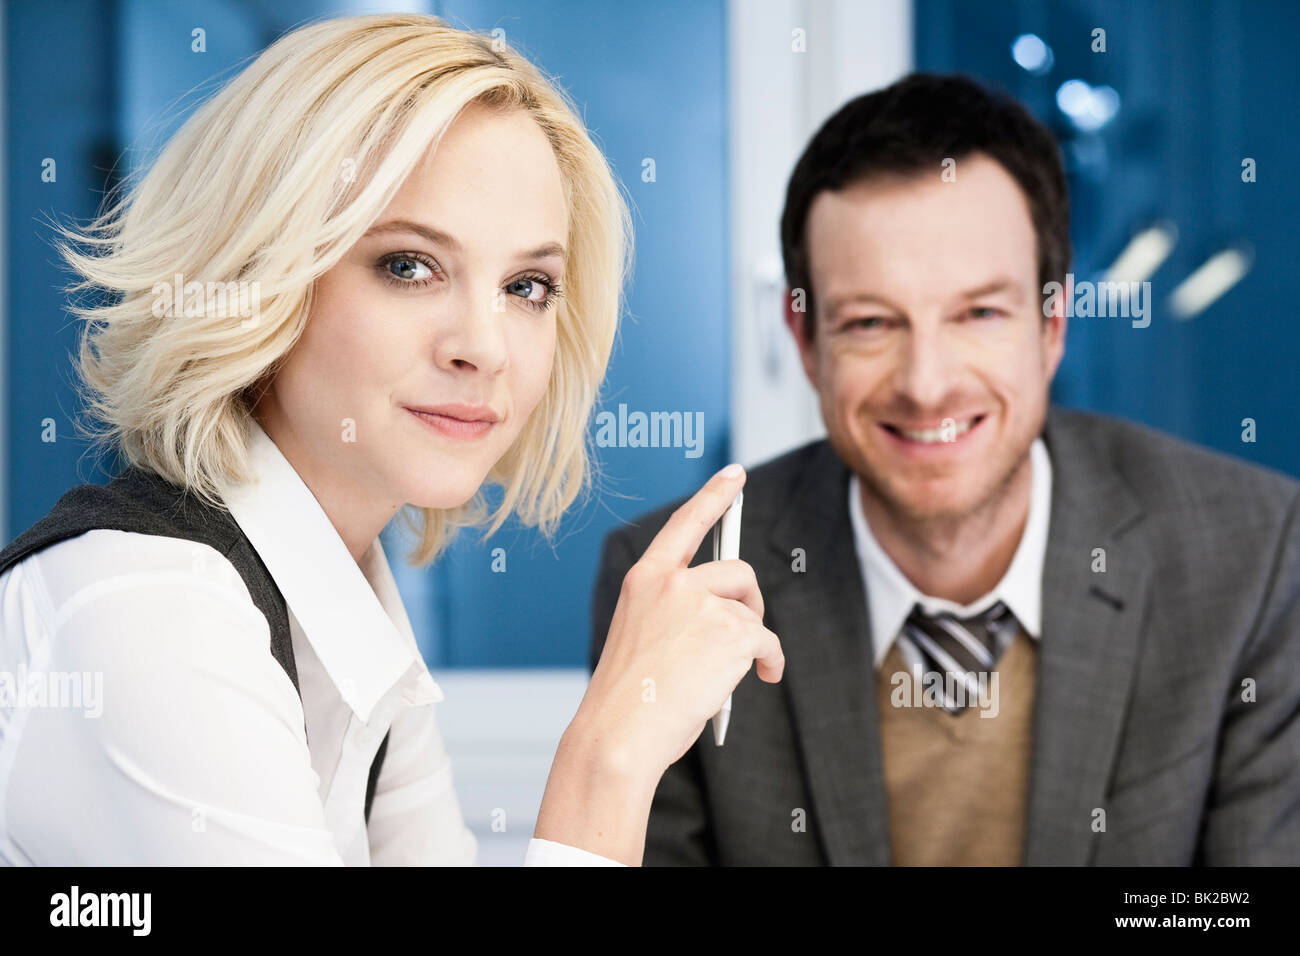 Business people looking at viewer - Stock Image